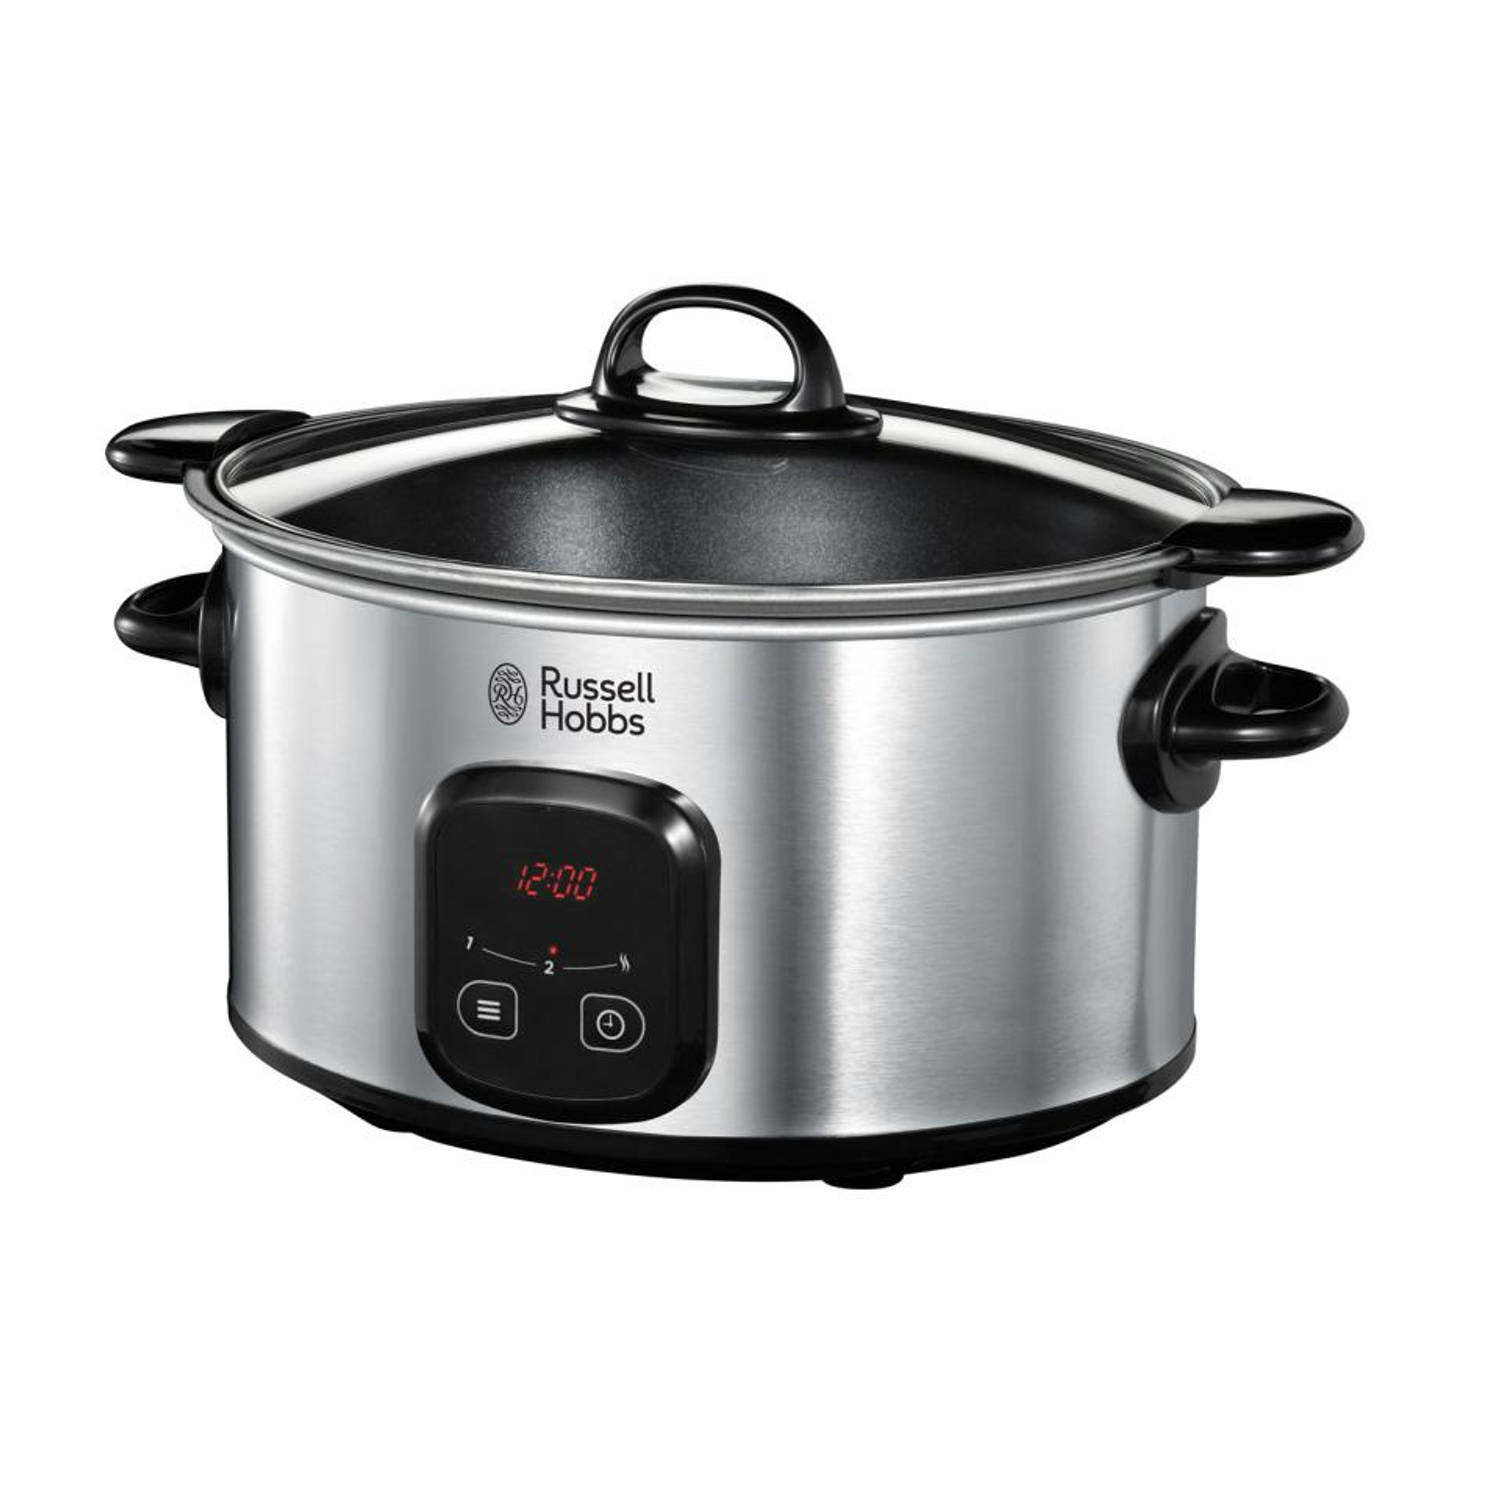 Russell Hobbs Maxicook slowcooker 22750-56